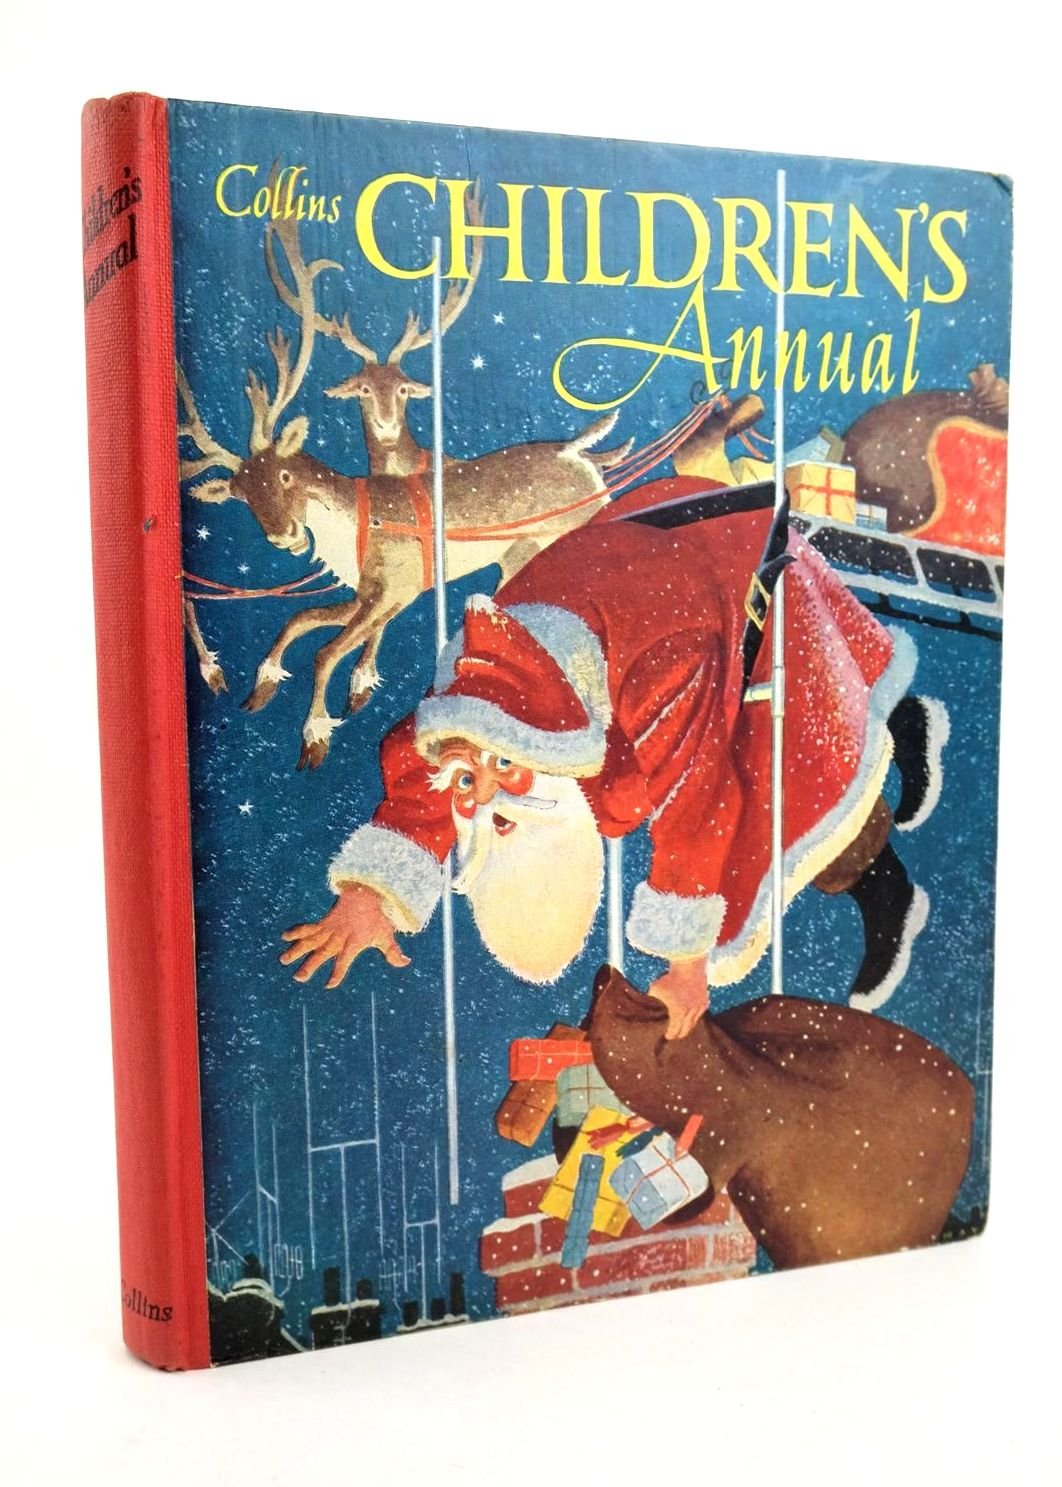 Photo of COLLINS CHILDREN'S ANNUAL- Stock Number: 1318935